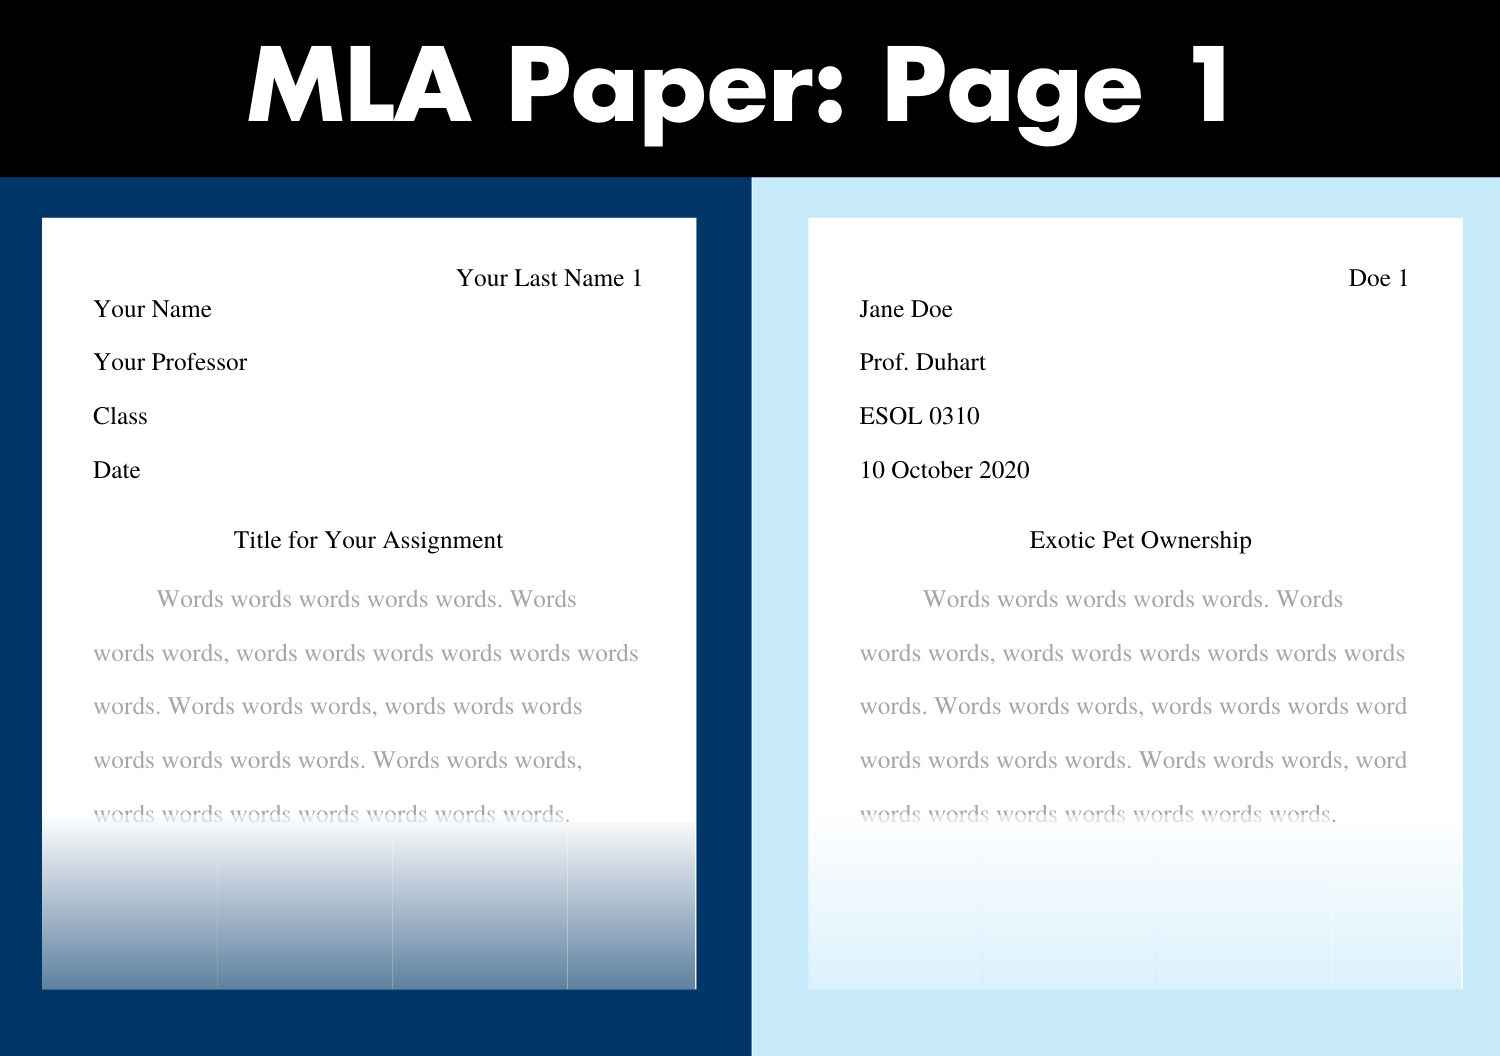 Start an MLA paper with your name, your professor's name, the class and the date, all double-spaced. One line down, centered, is the title. In the upper-right corner, in the header, is your last name with page number.